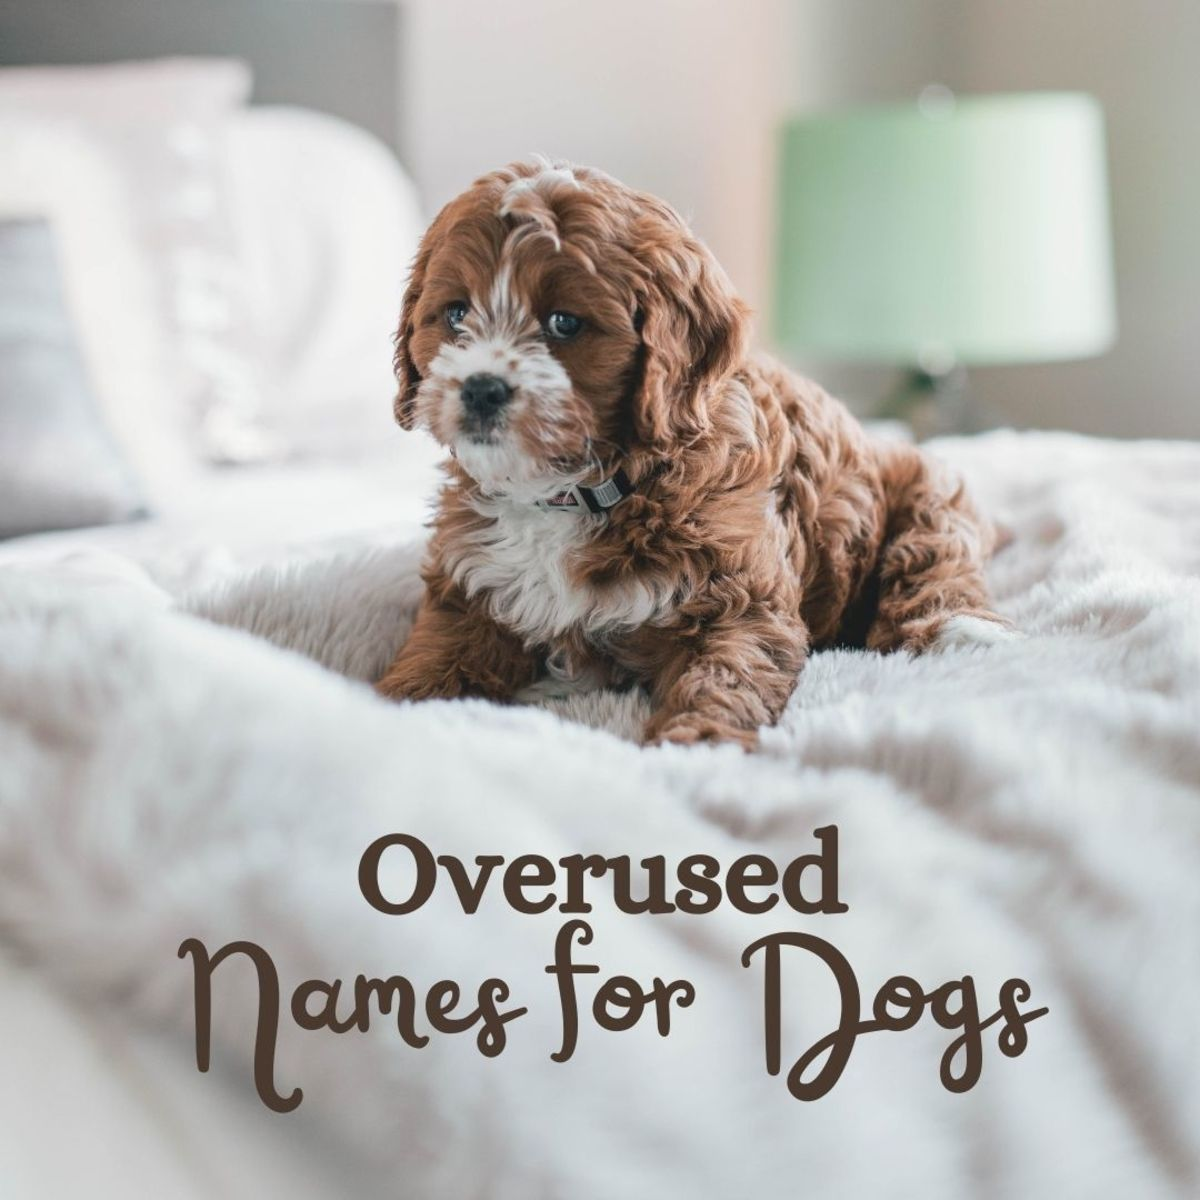 The Top 50 Most Overused Dog Names of All Time